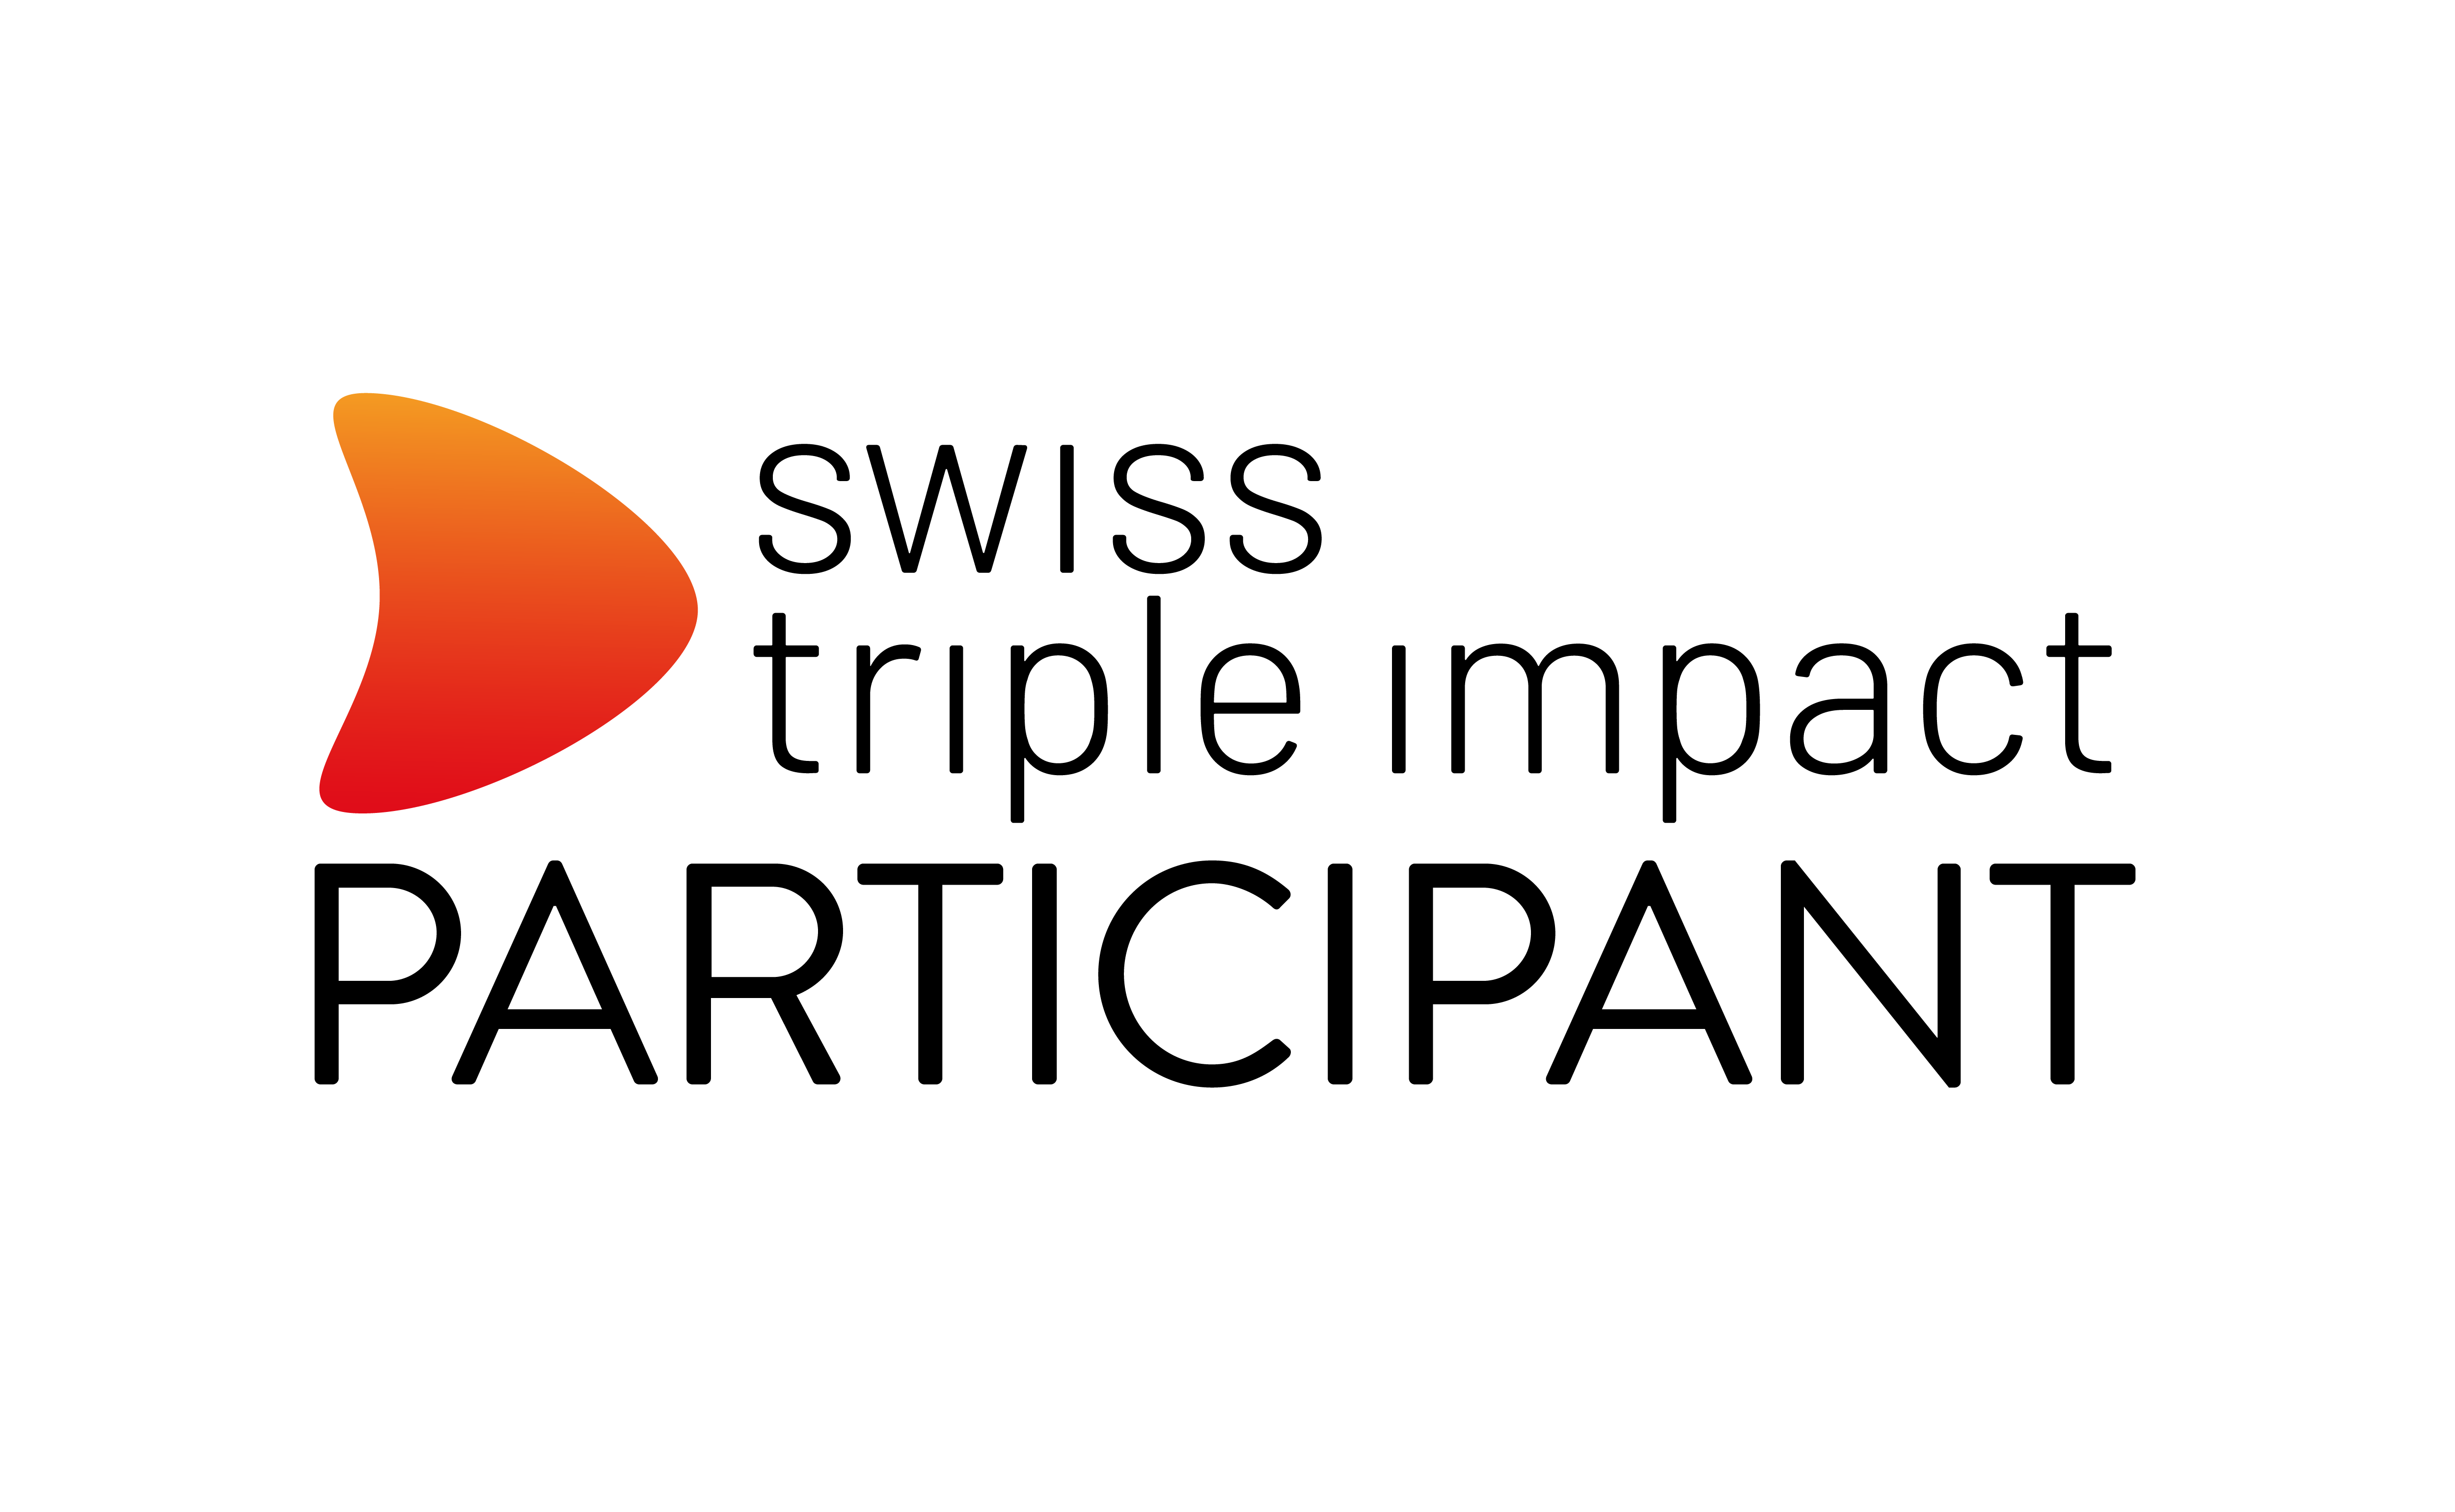 Sommet Education Is The First Group In The Education Sector Joining The Swiss Triple Impact Program